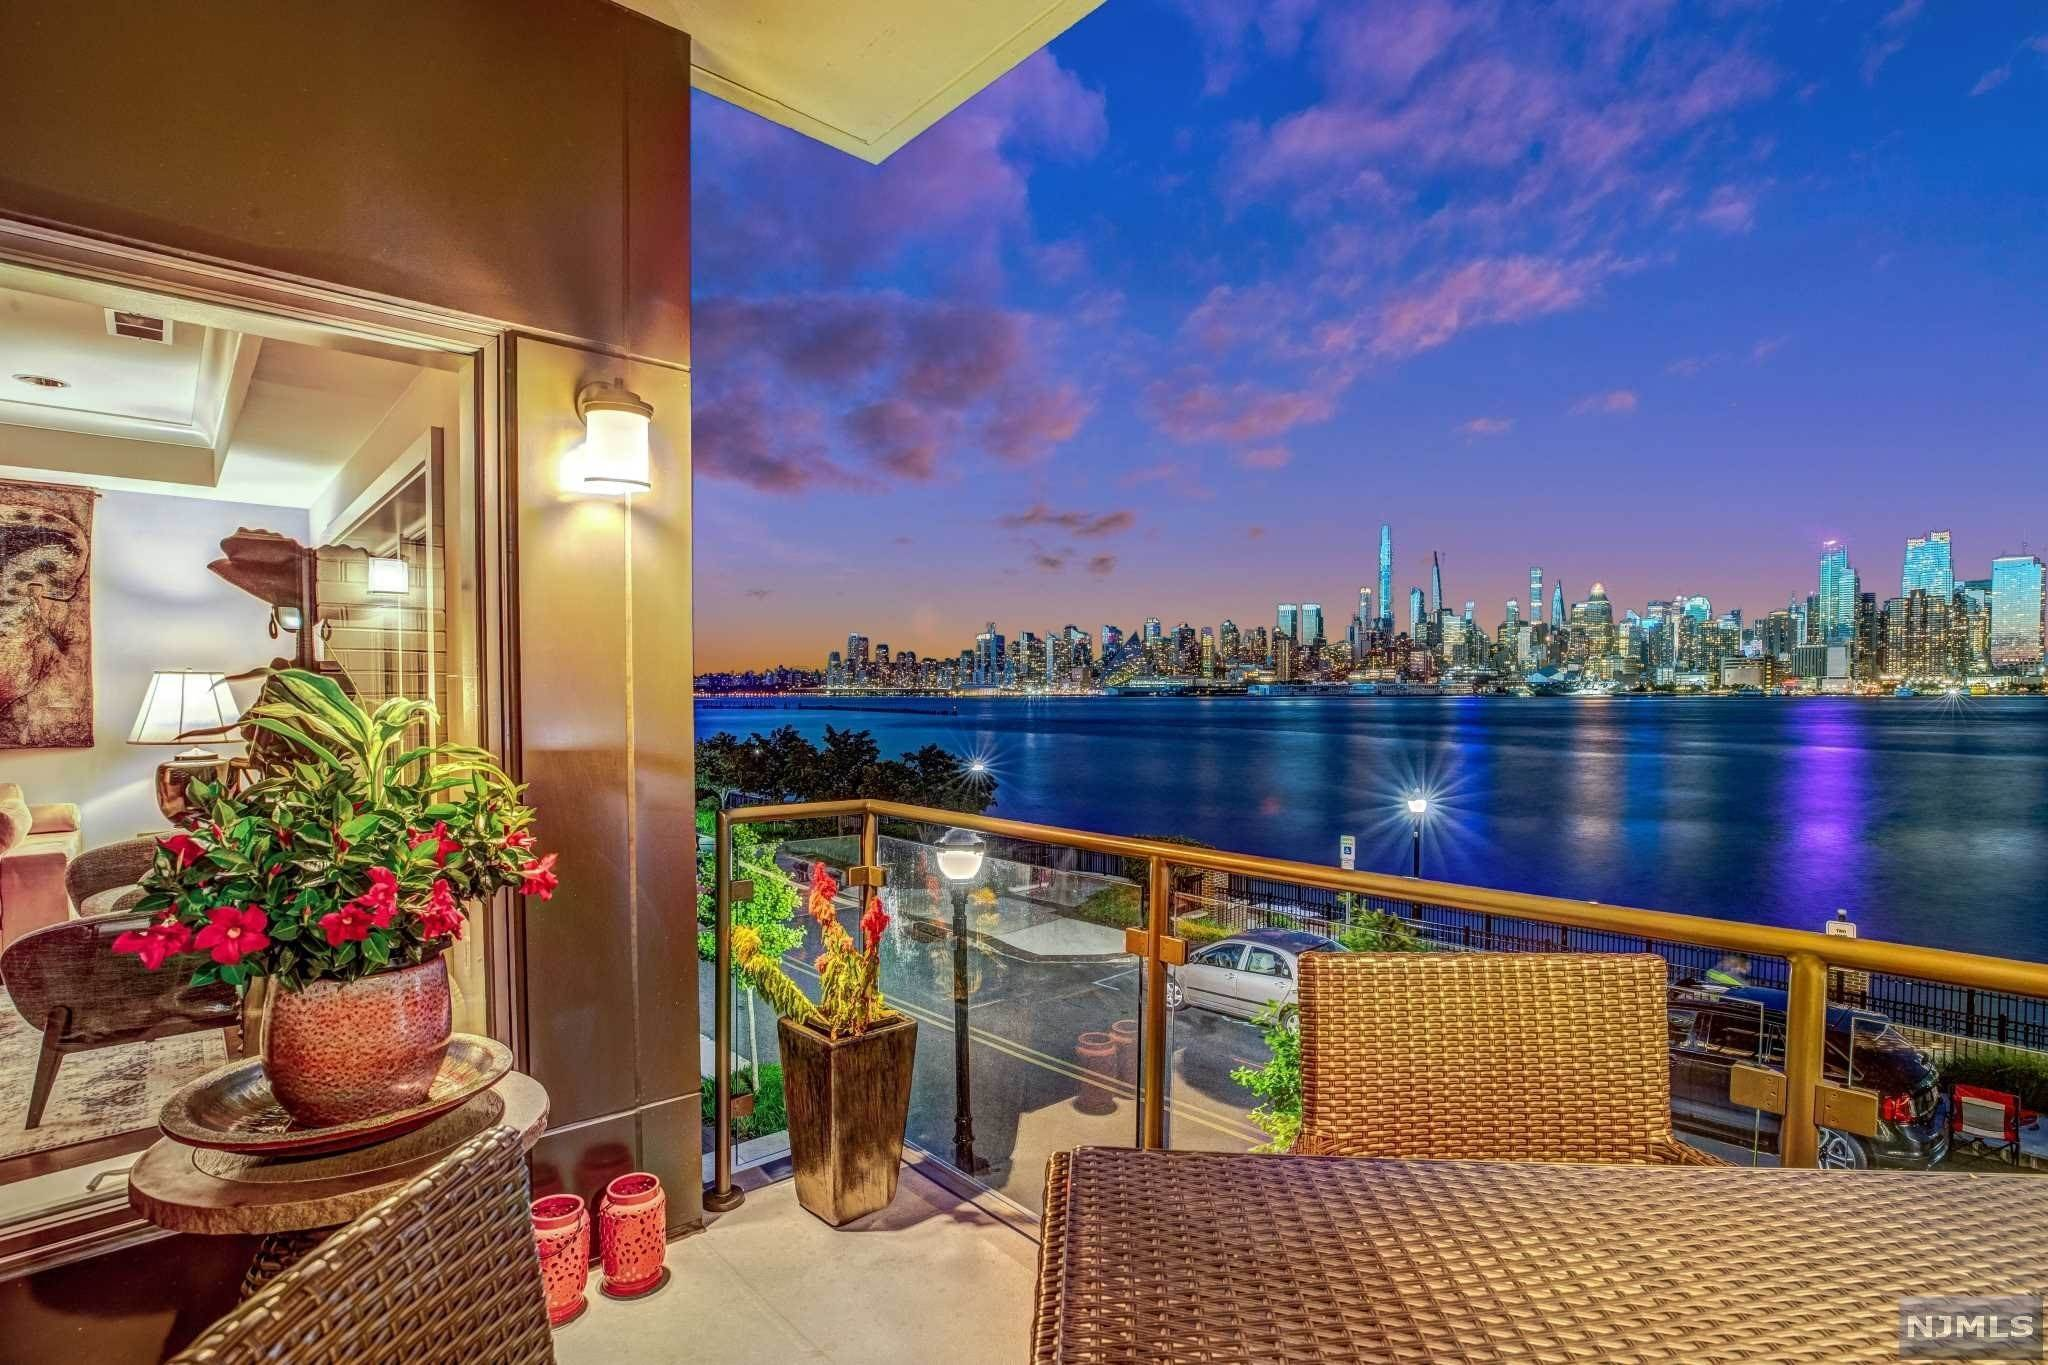 Condominium for Sale at 150 Henley Place #208 Weehawken, New Jersey, 07086 United States